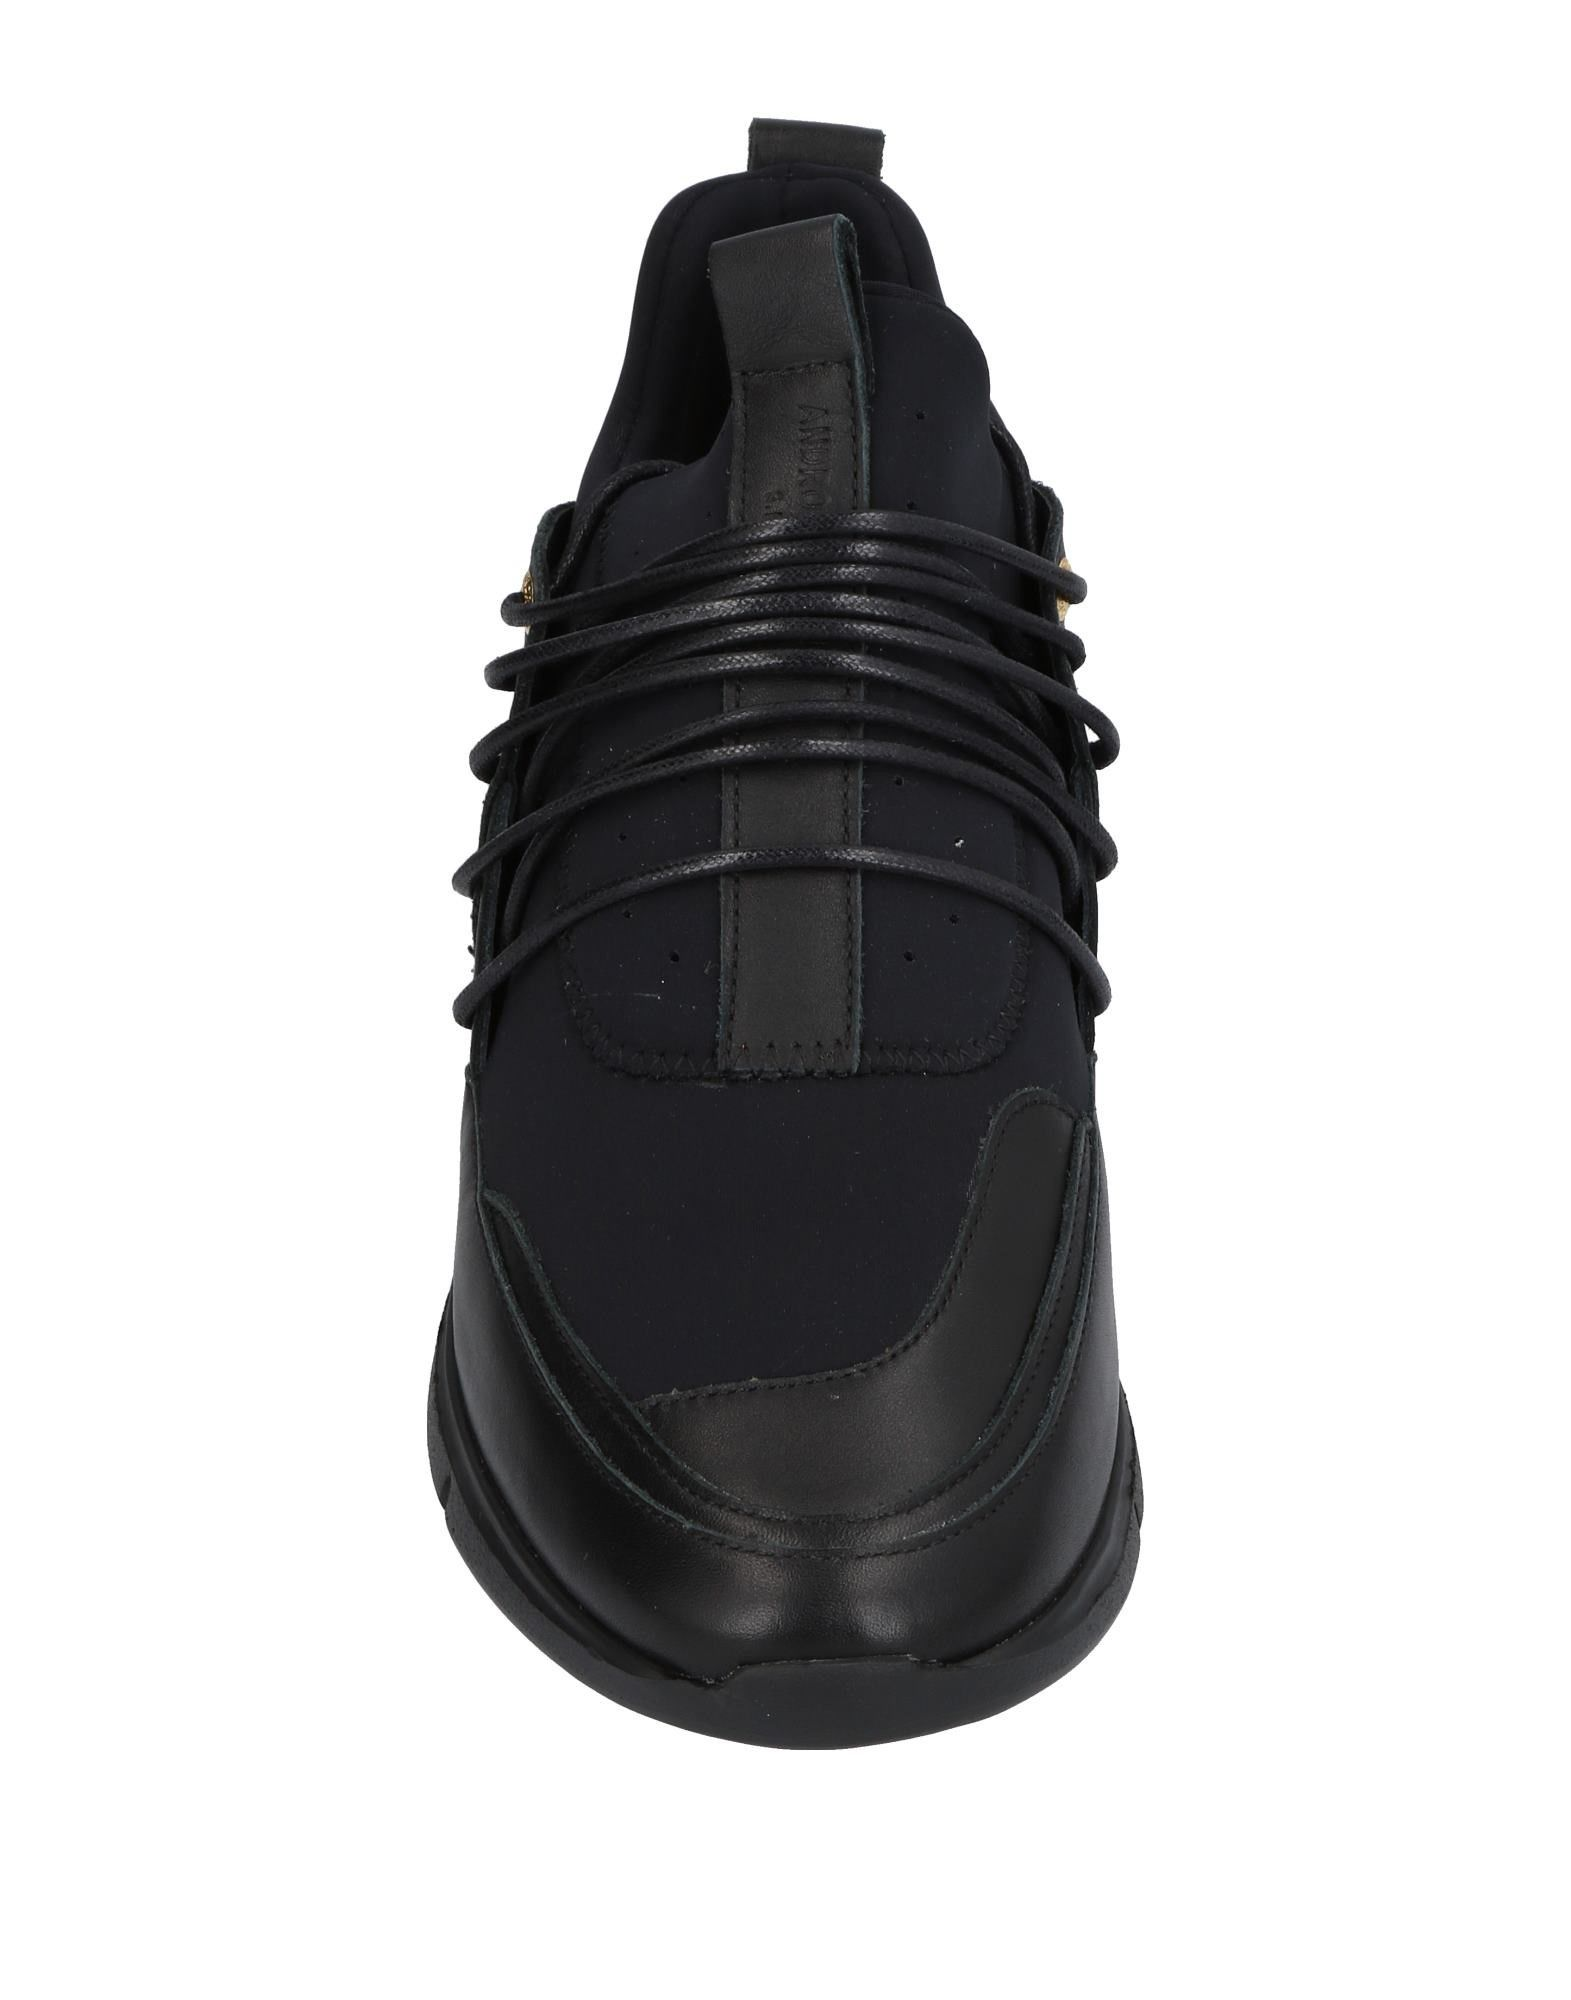 Android Homme Sneakers Sneakers Homme Herren  11423306OJ Neue Schuhe 71a9f5